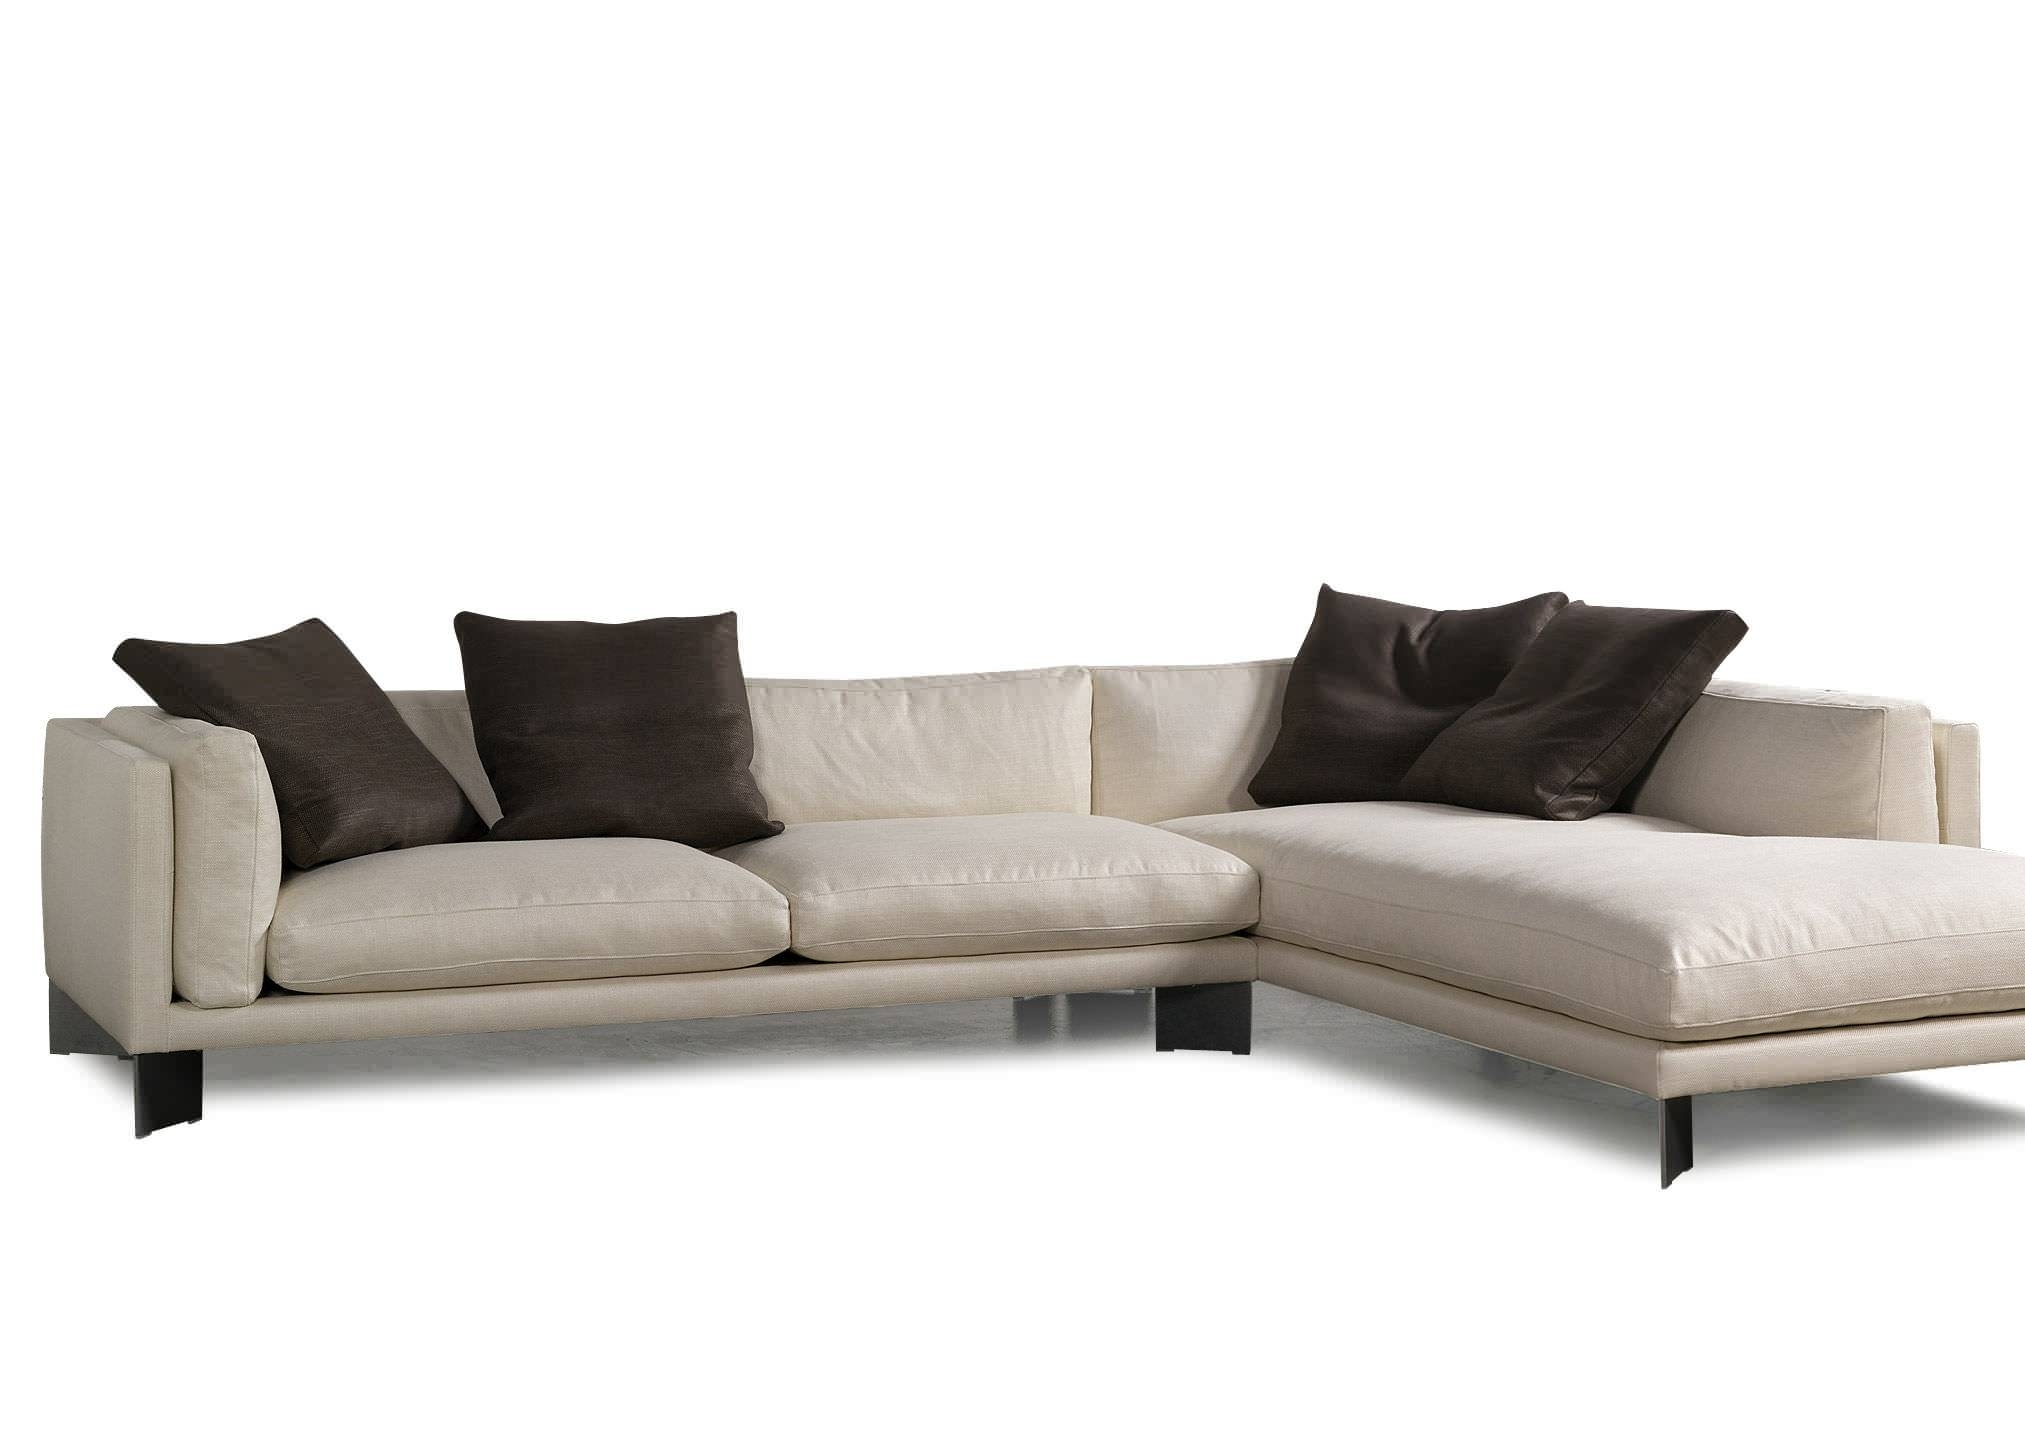 10 Cool Goose Down Sectional Sofa Snapshot Ideas : Lawsh in Goose Down Sectional Sofa (Image 1 of 25)